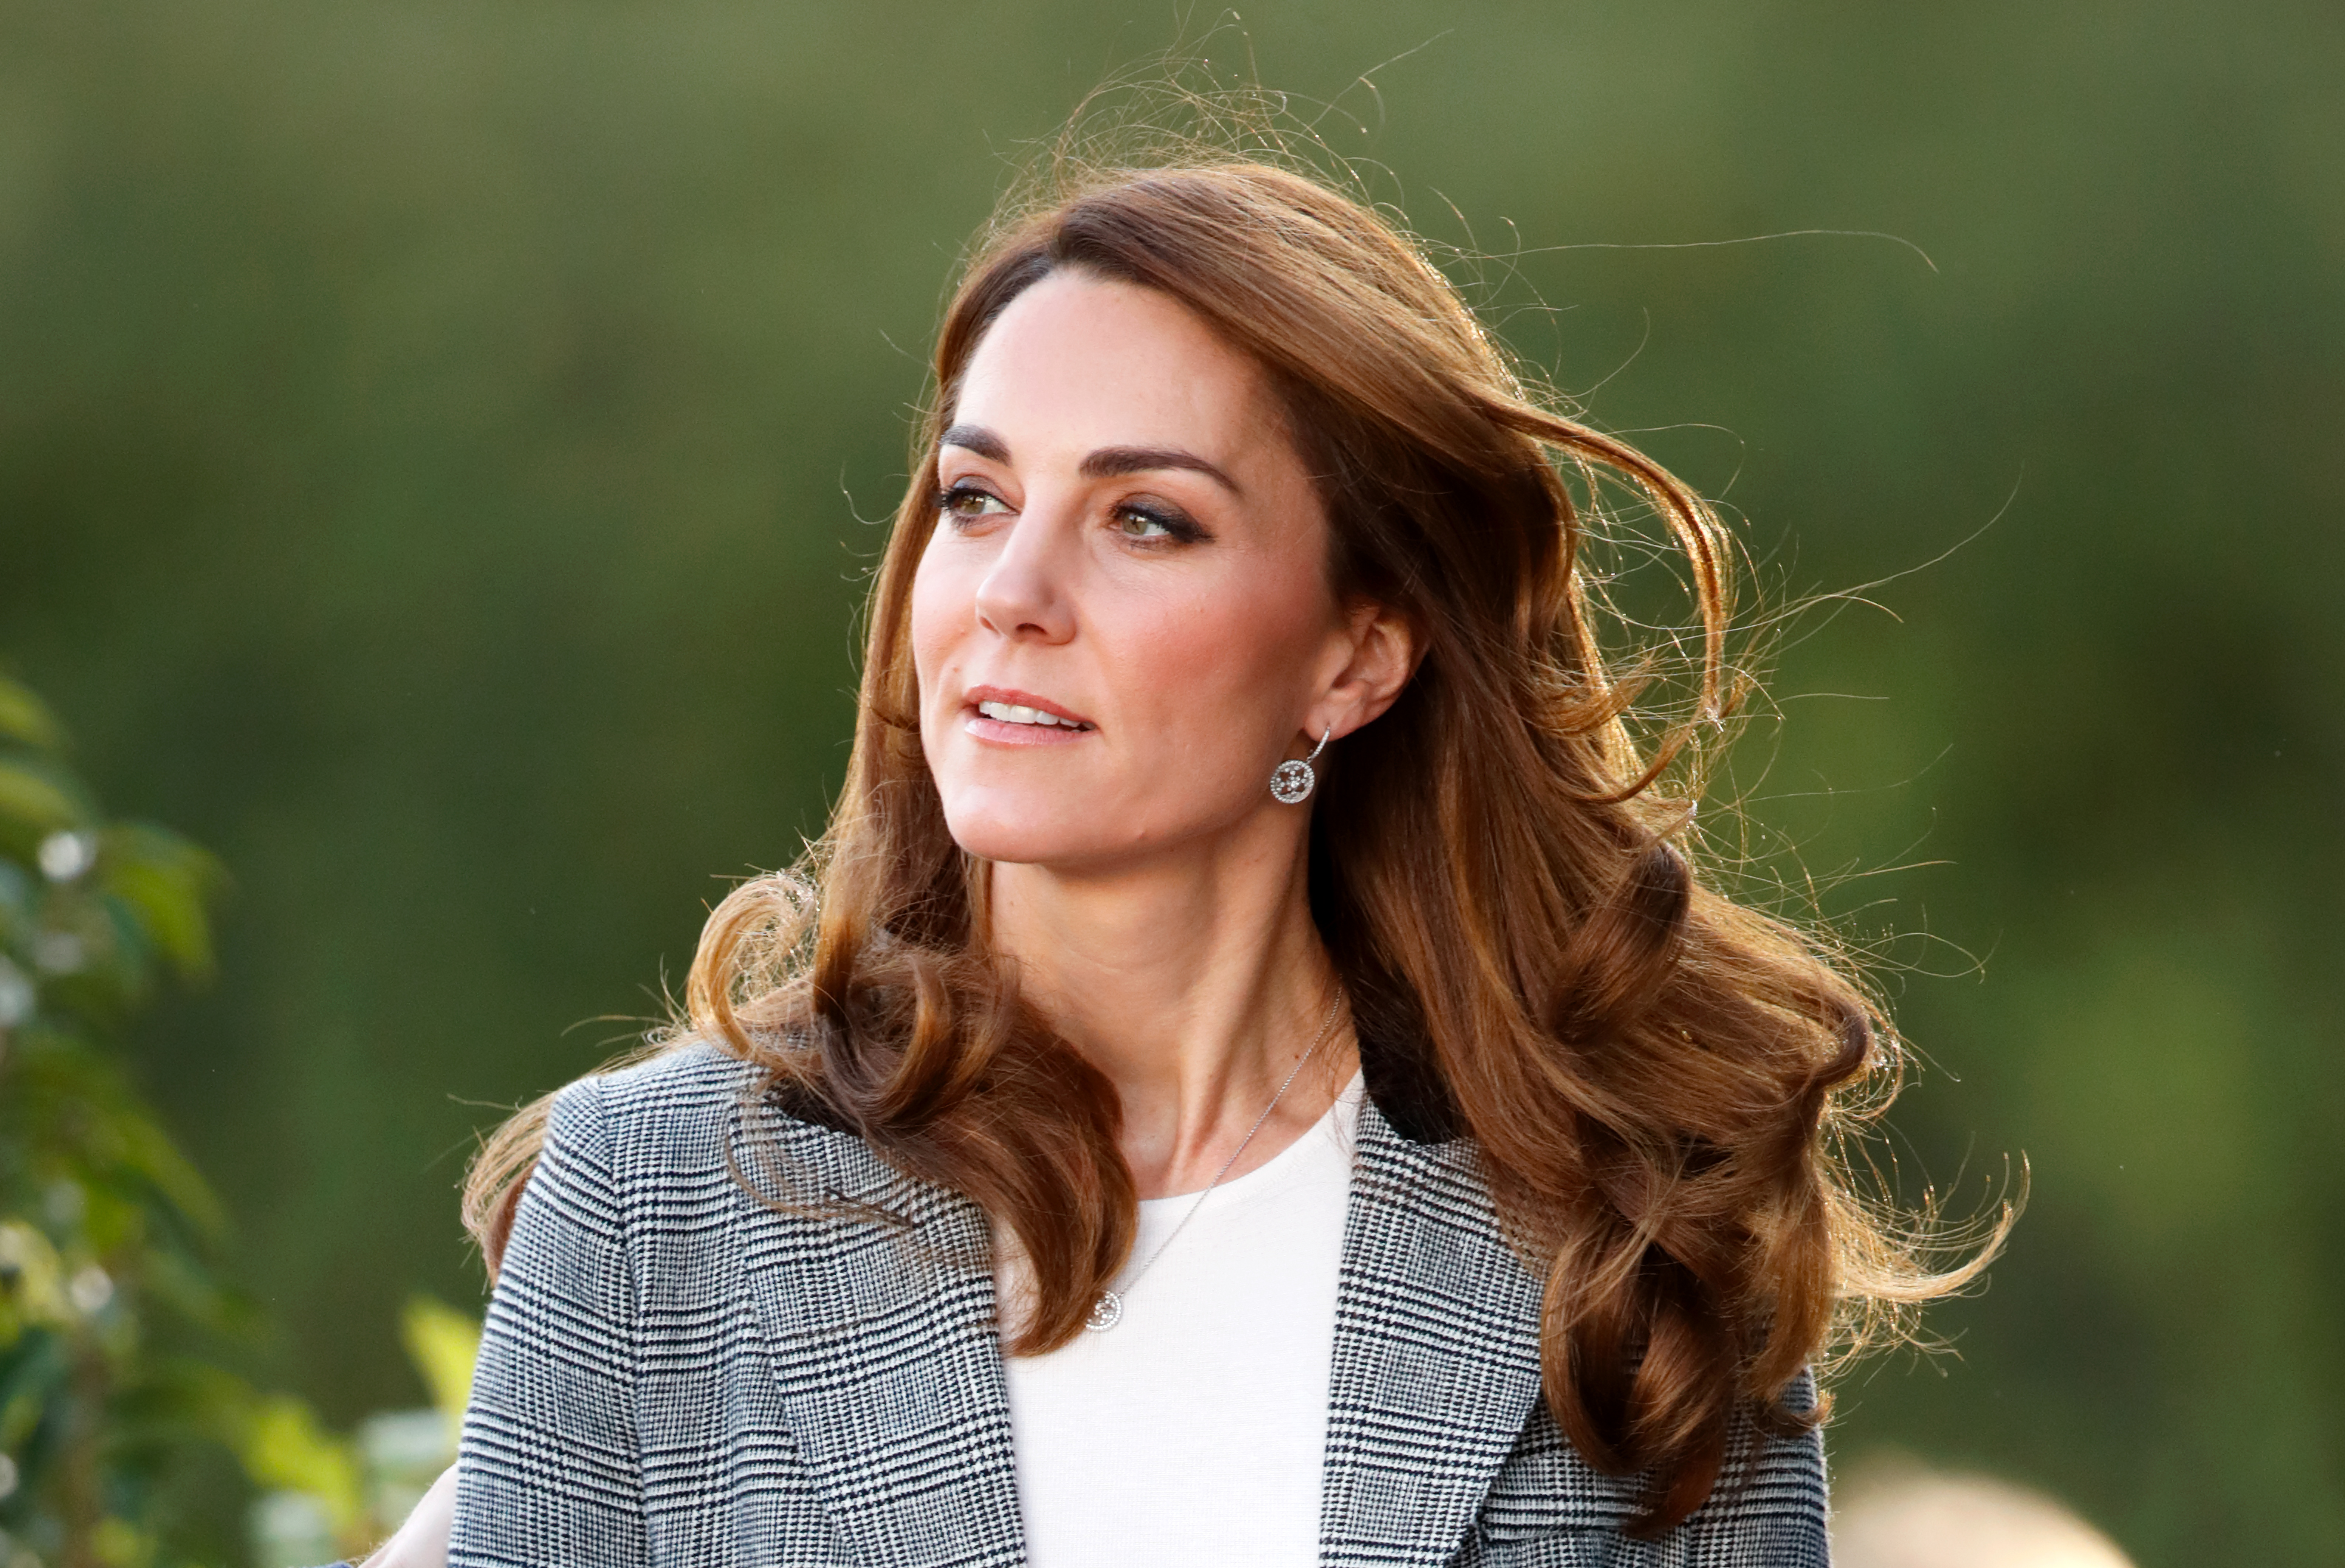 Kate Middleton's private secretary has unexpectedly resigned